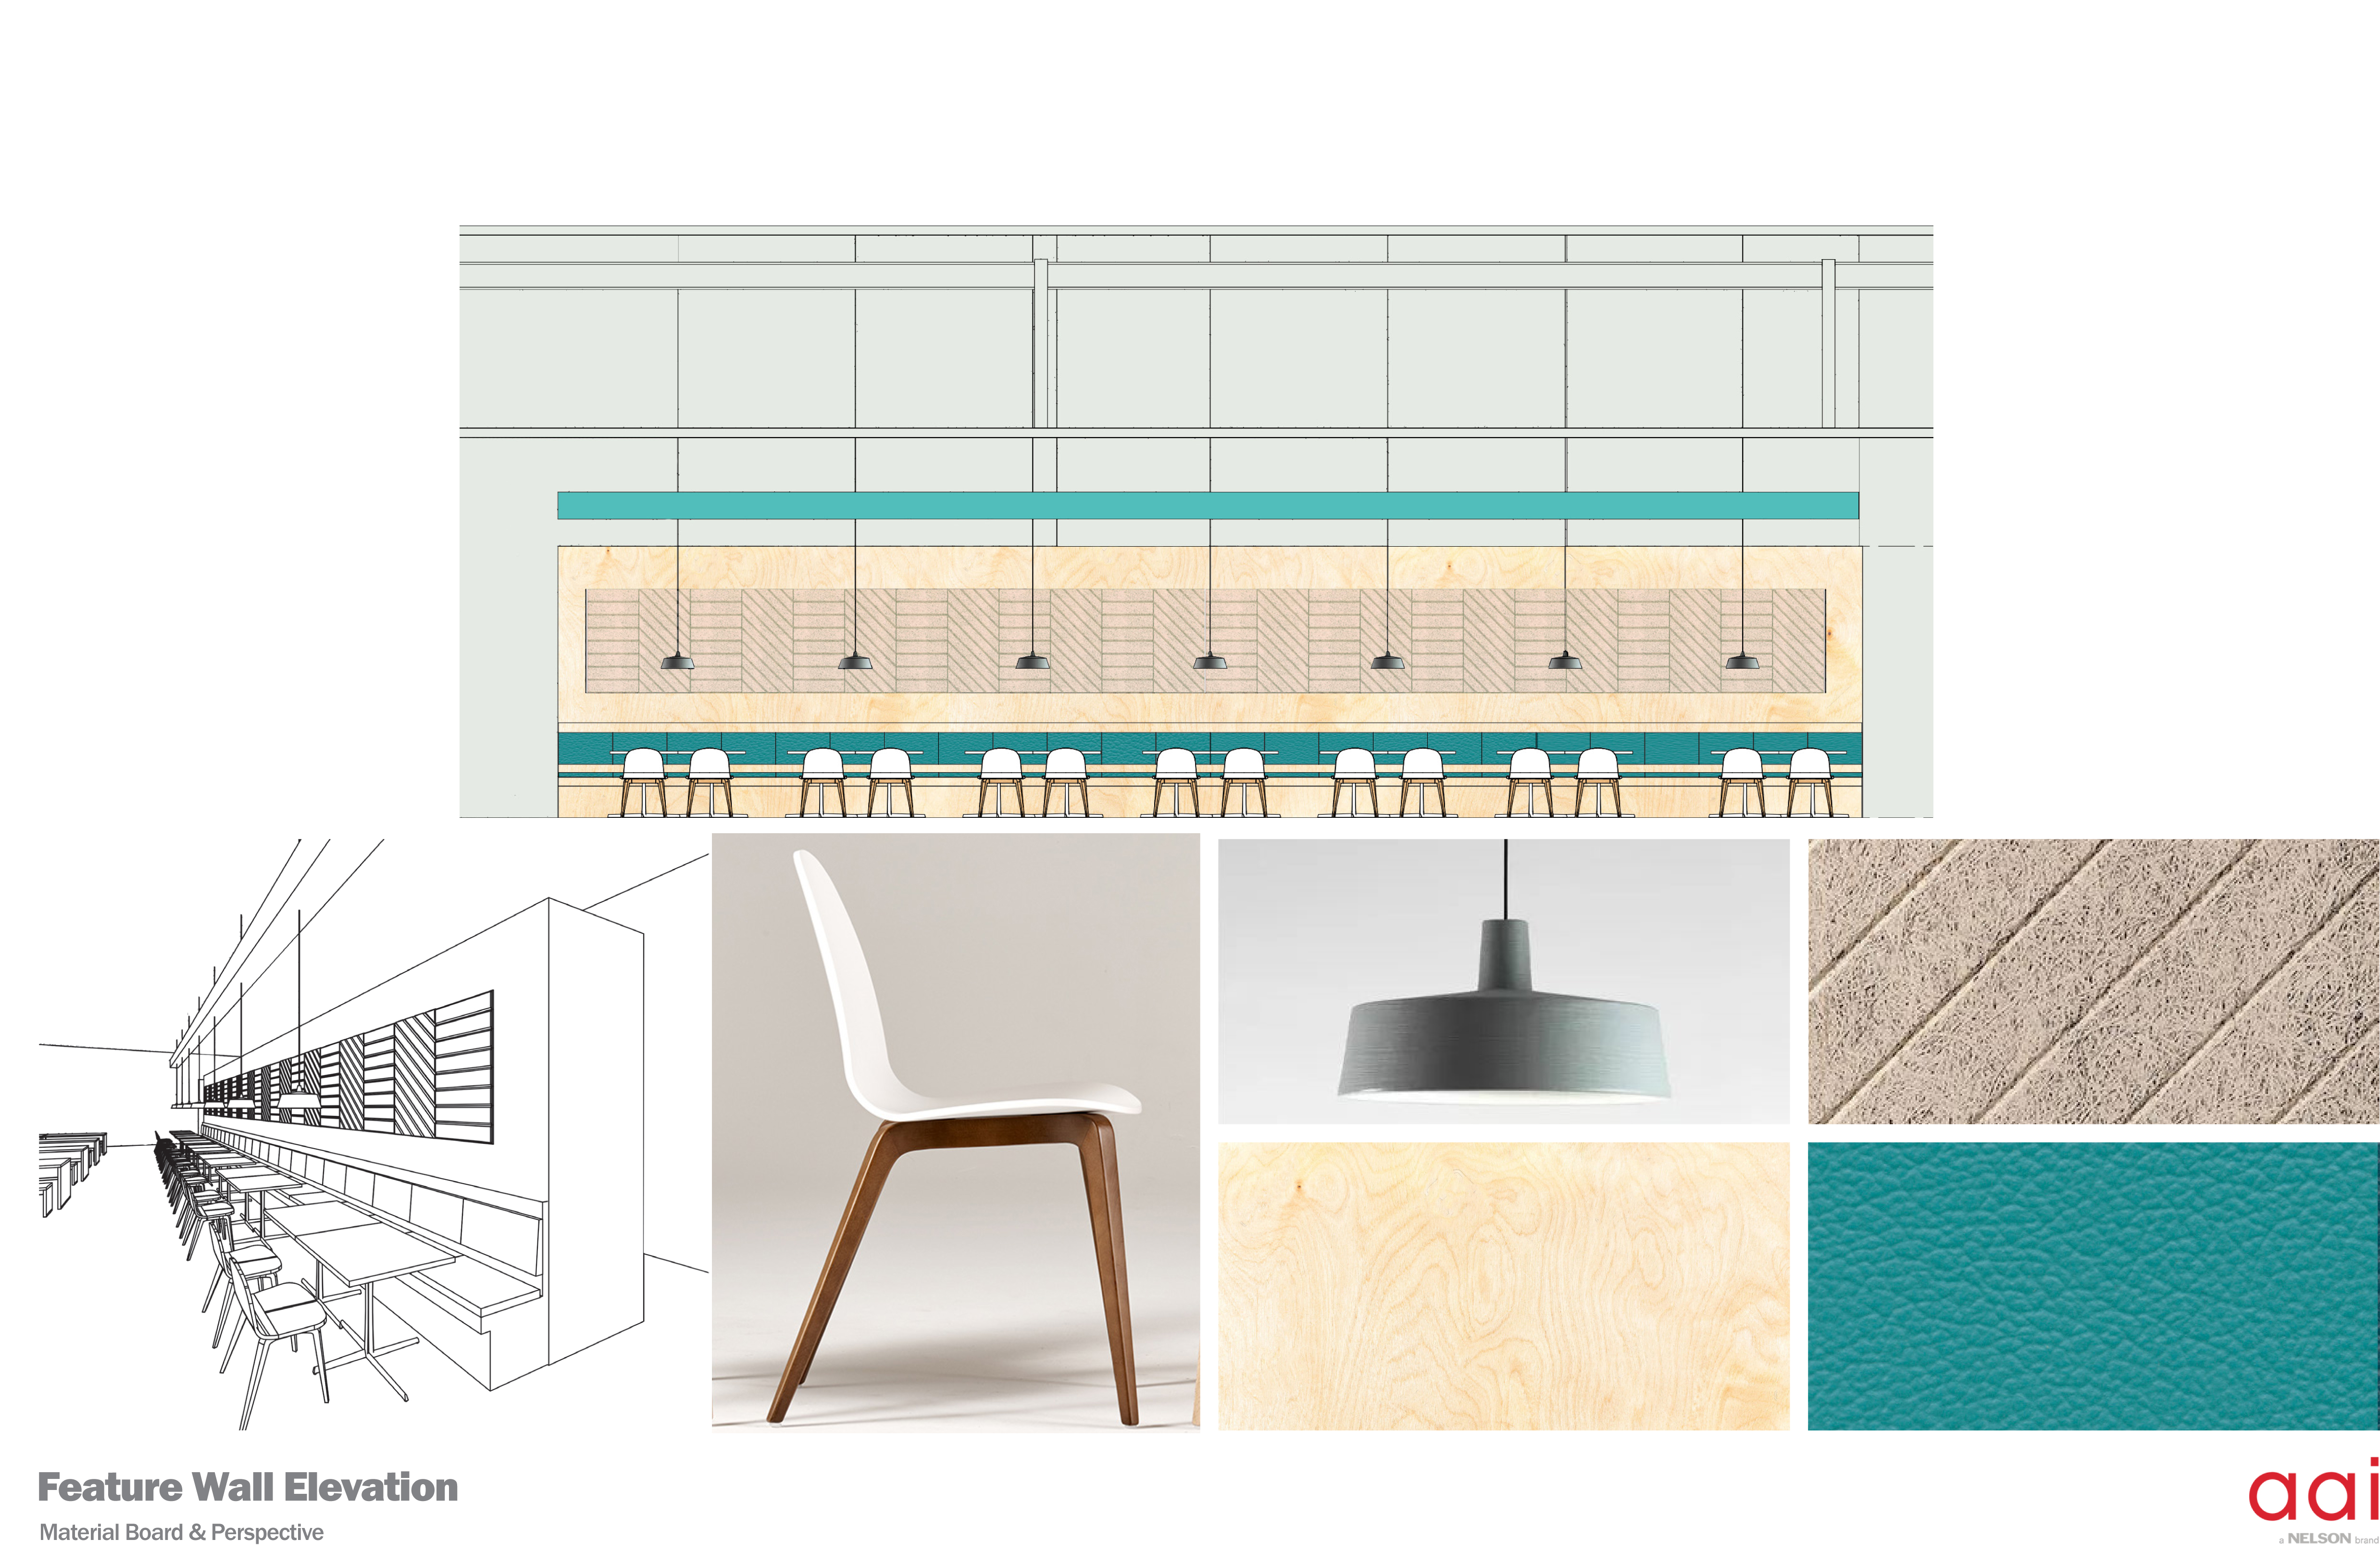 Feature Wall Elevation